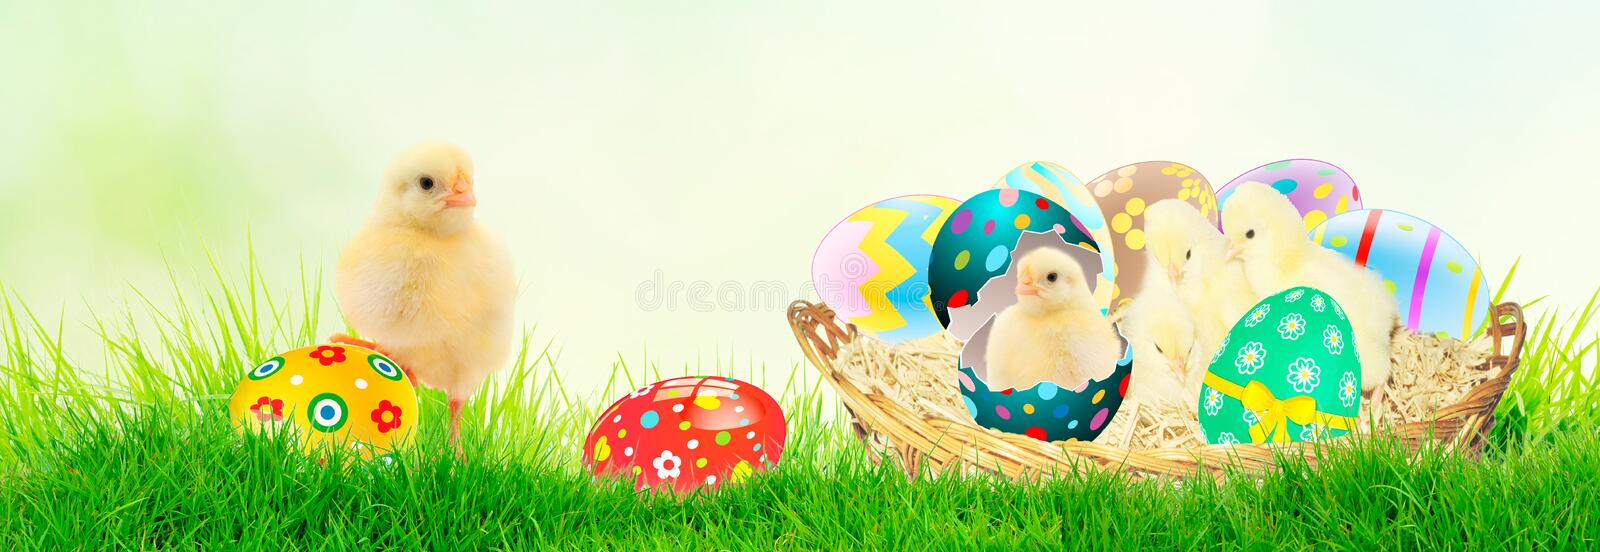 Cute little chicken coming out of the Easter egg in the grass on te spring background royalty free stock photos